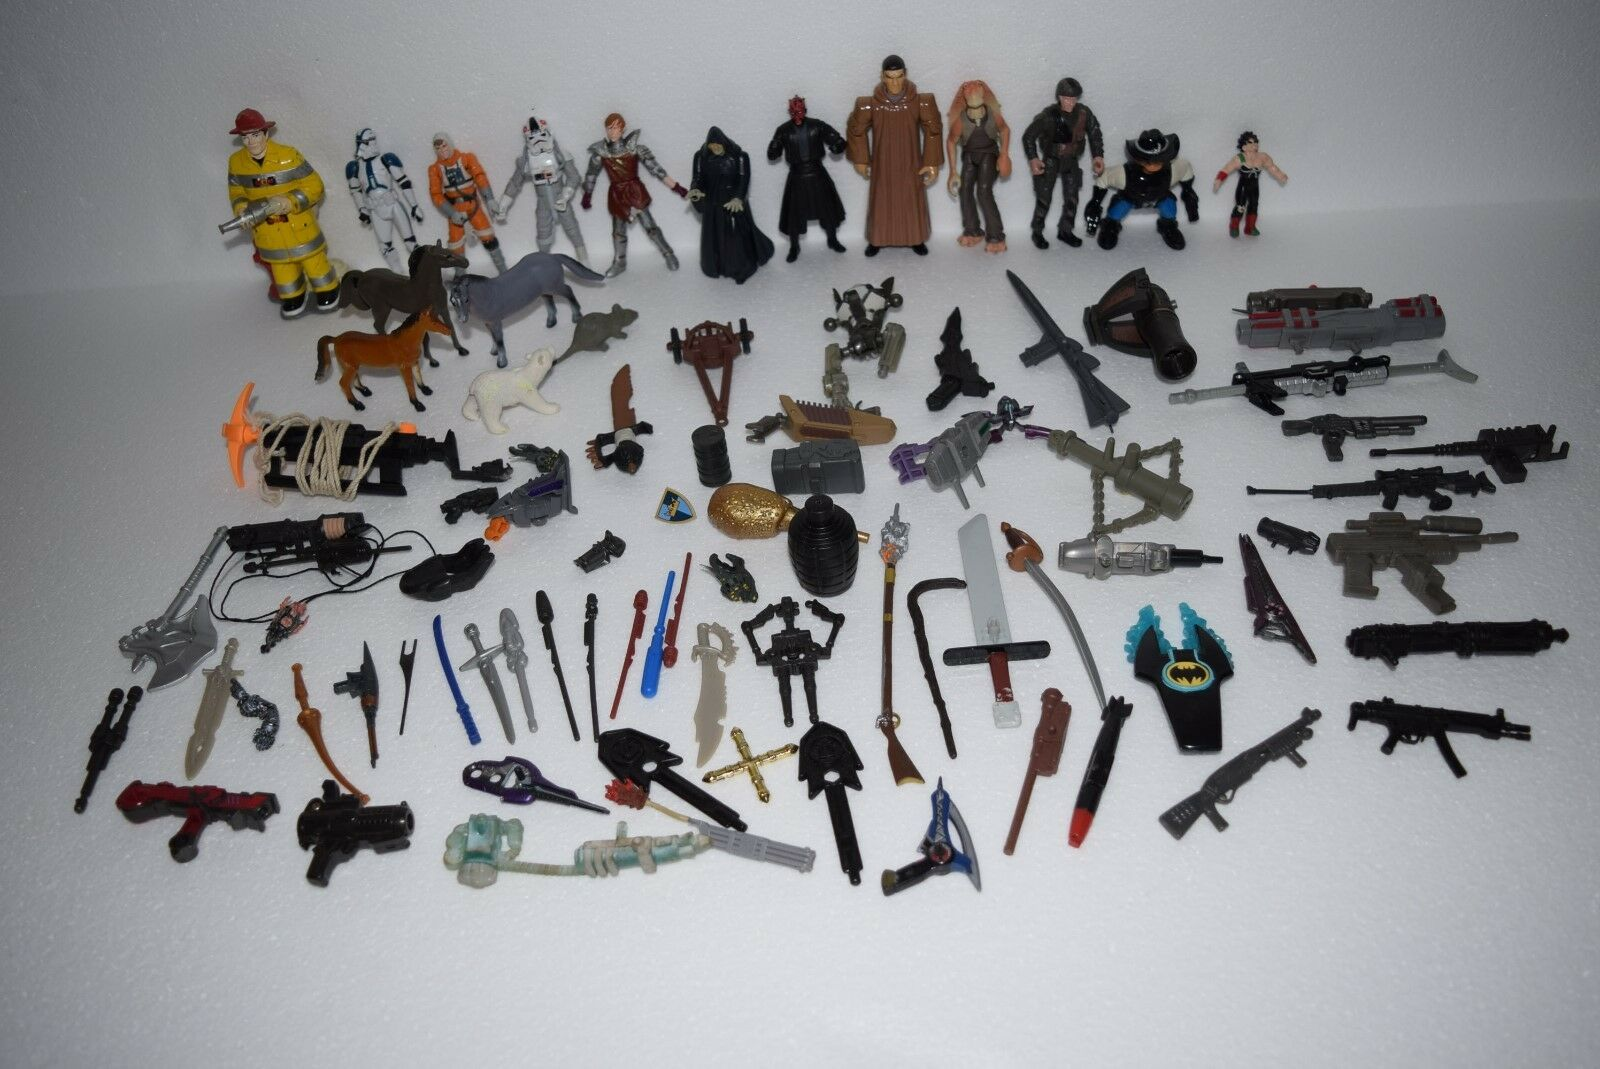 Vintage Lot of Action Figures Fireman, GI Joe, Star Star Star Wars, Weapons, Accessories 99218d